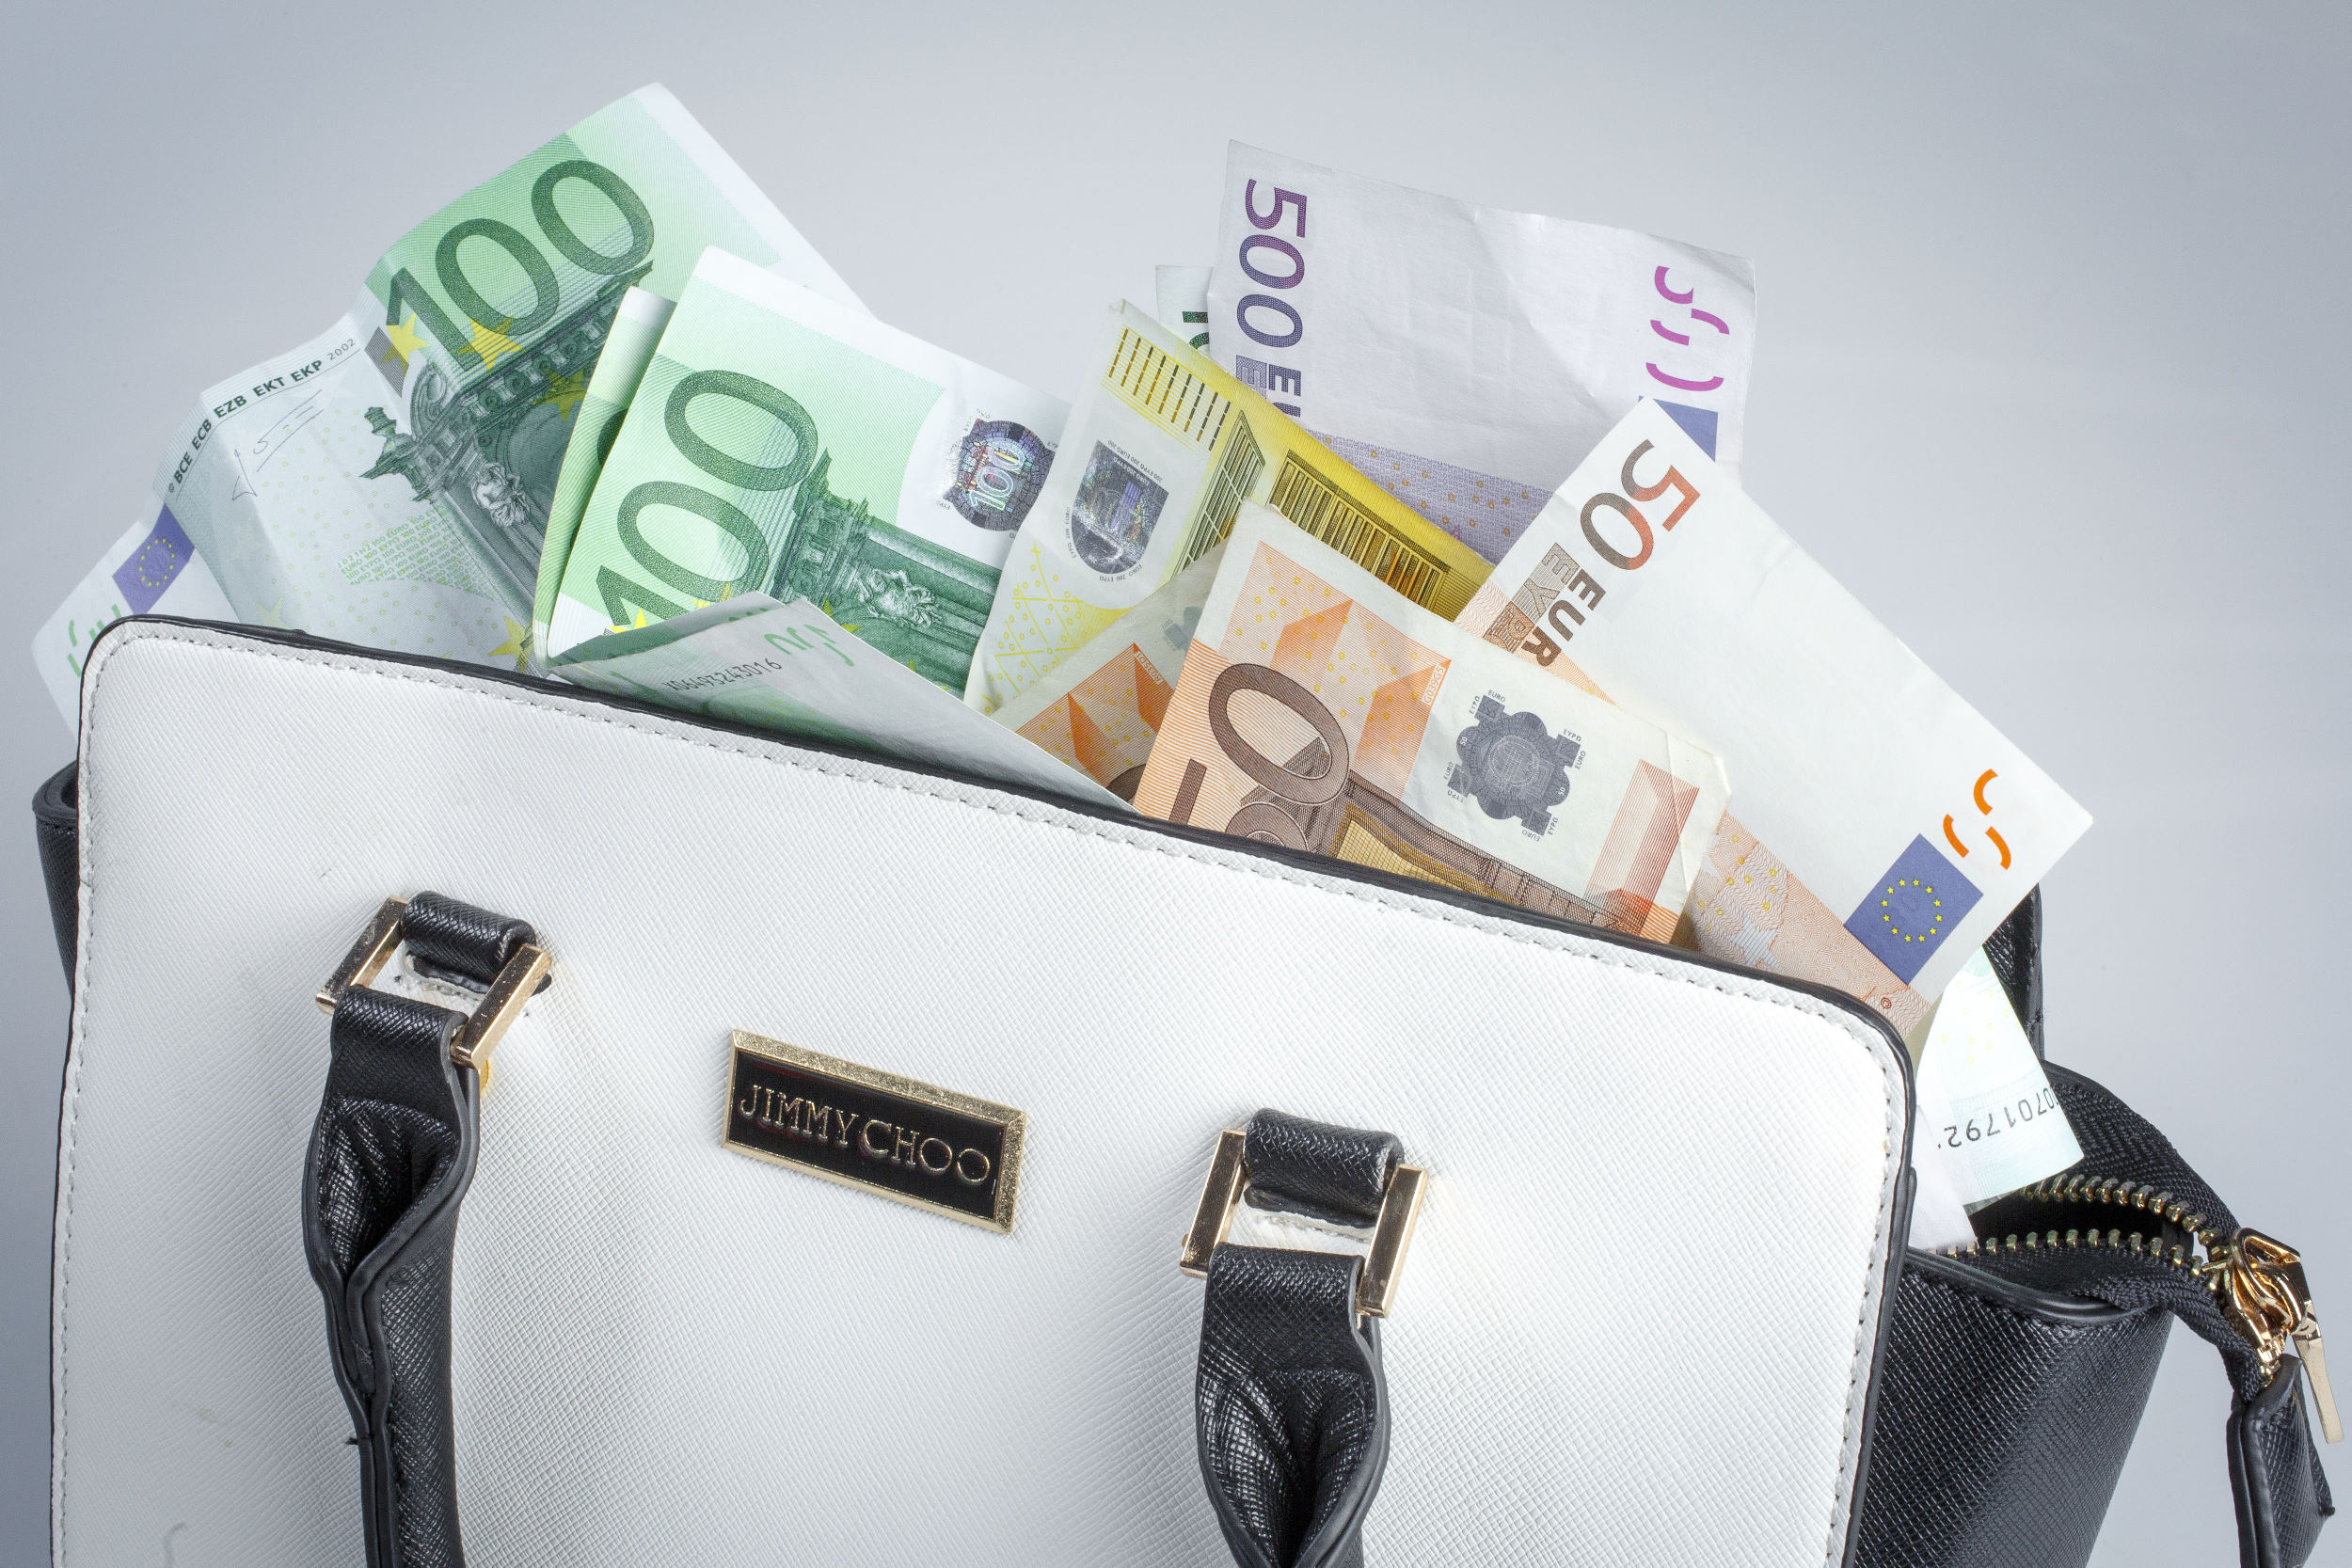 geld, money, sparen, savings, spaarpot, tas, bag, briefgeld, papiergeld, bills, briefje, contant, cash